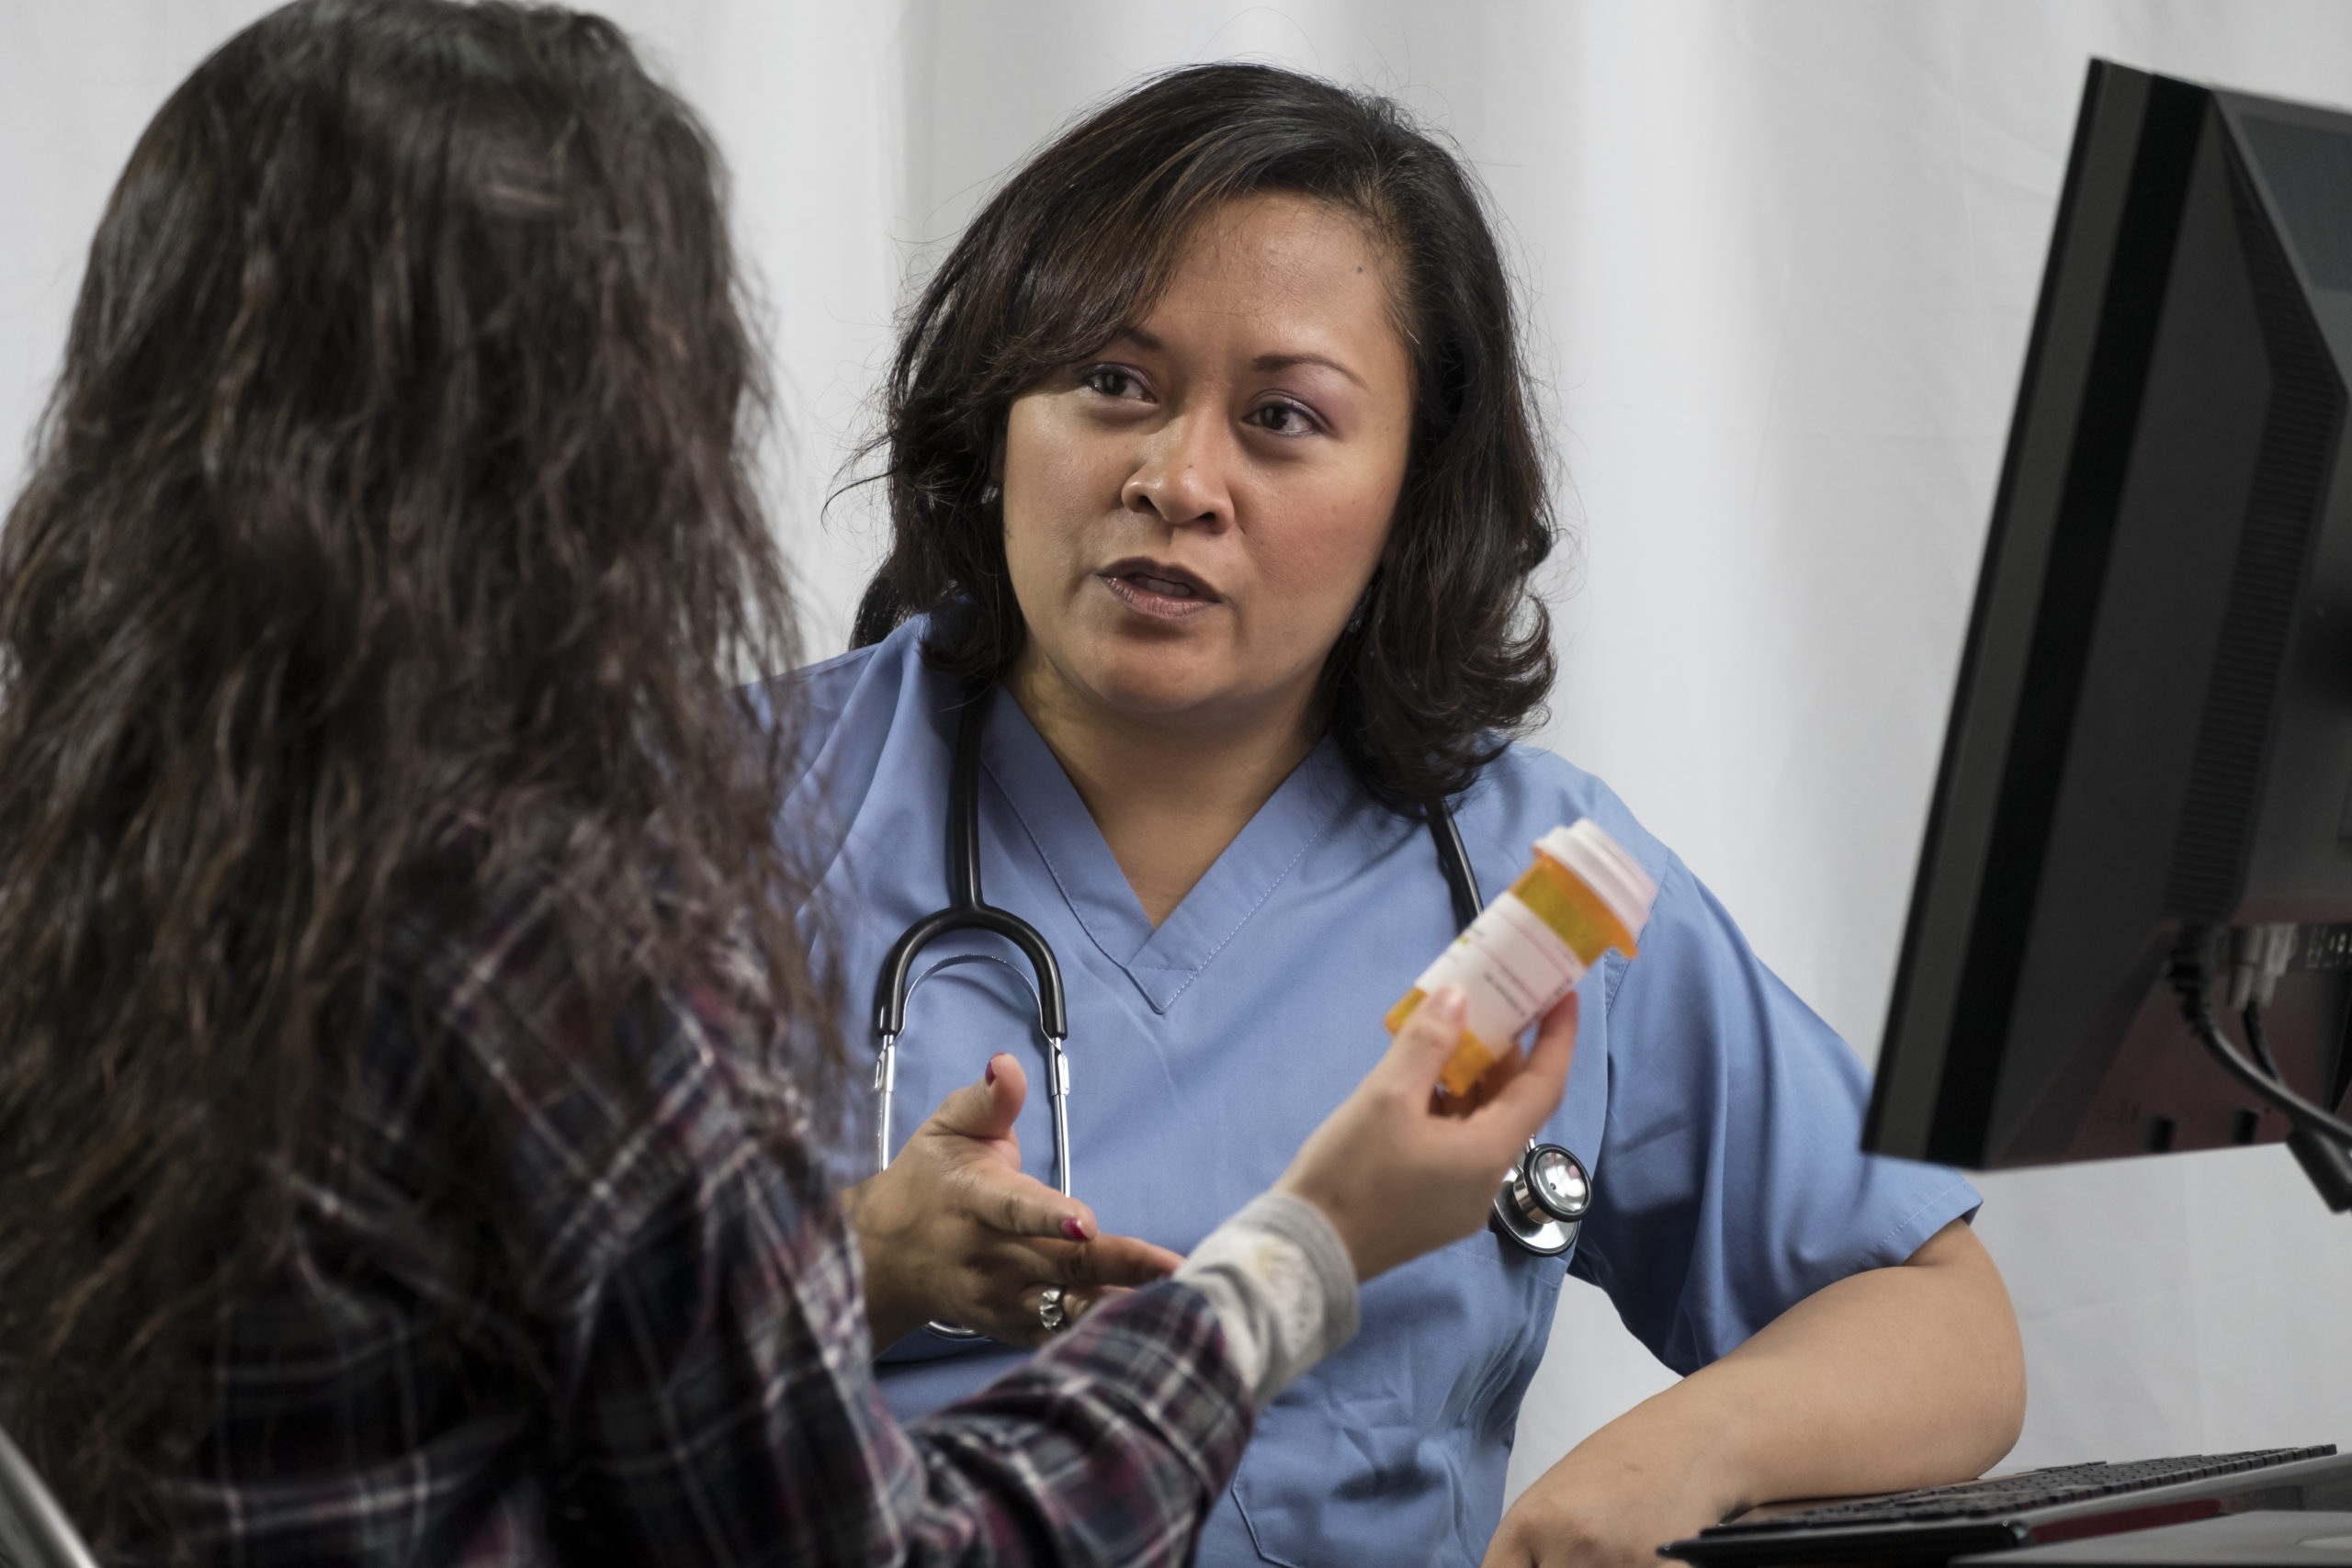 Female patient receiving prescription advice from health professional